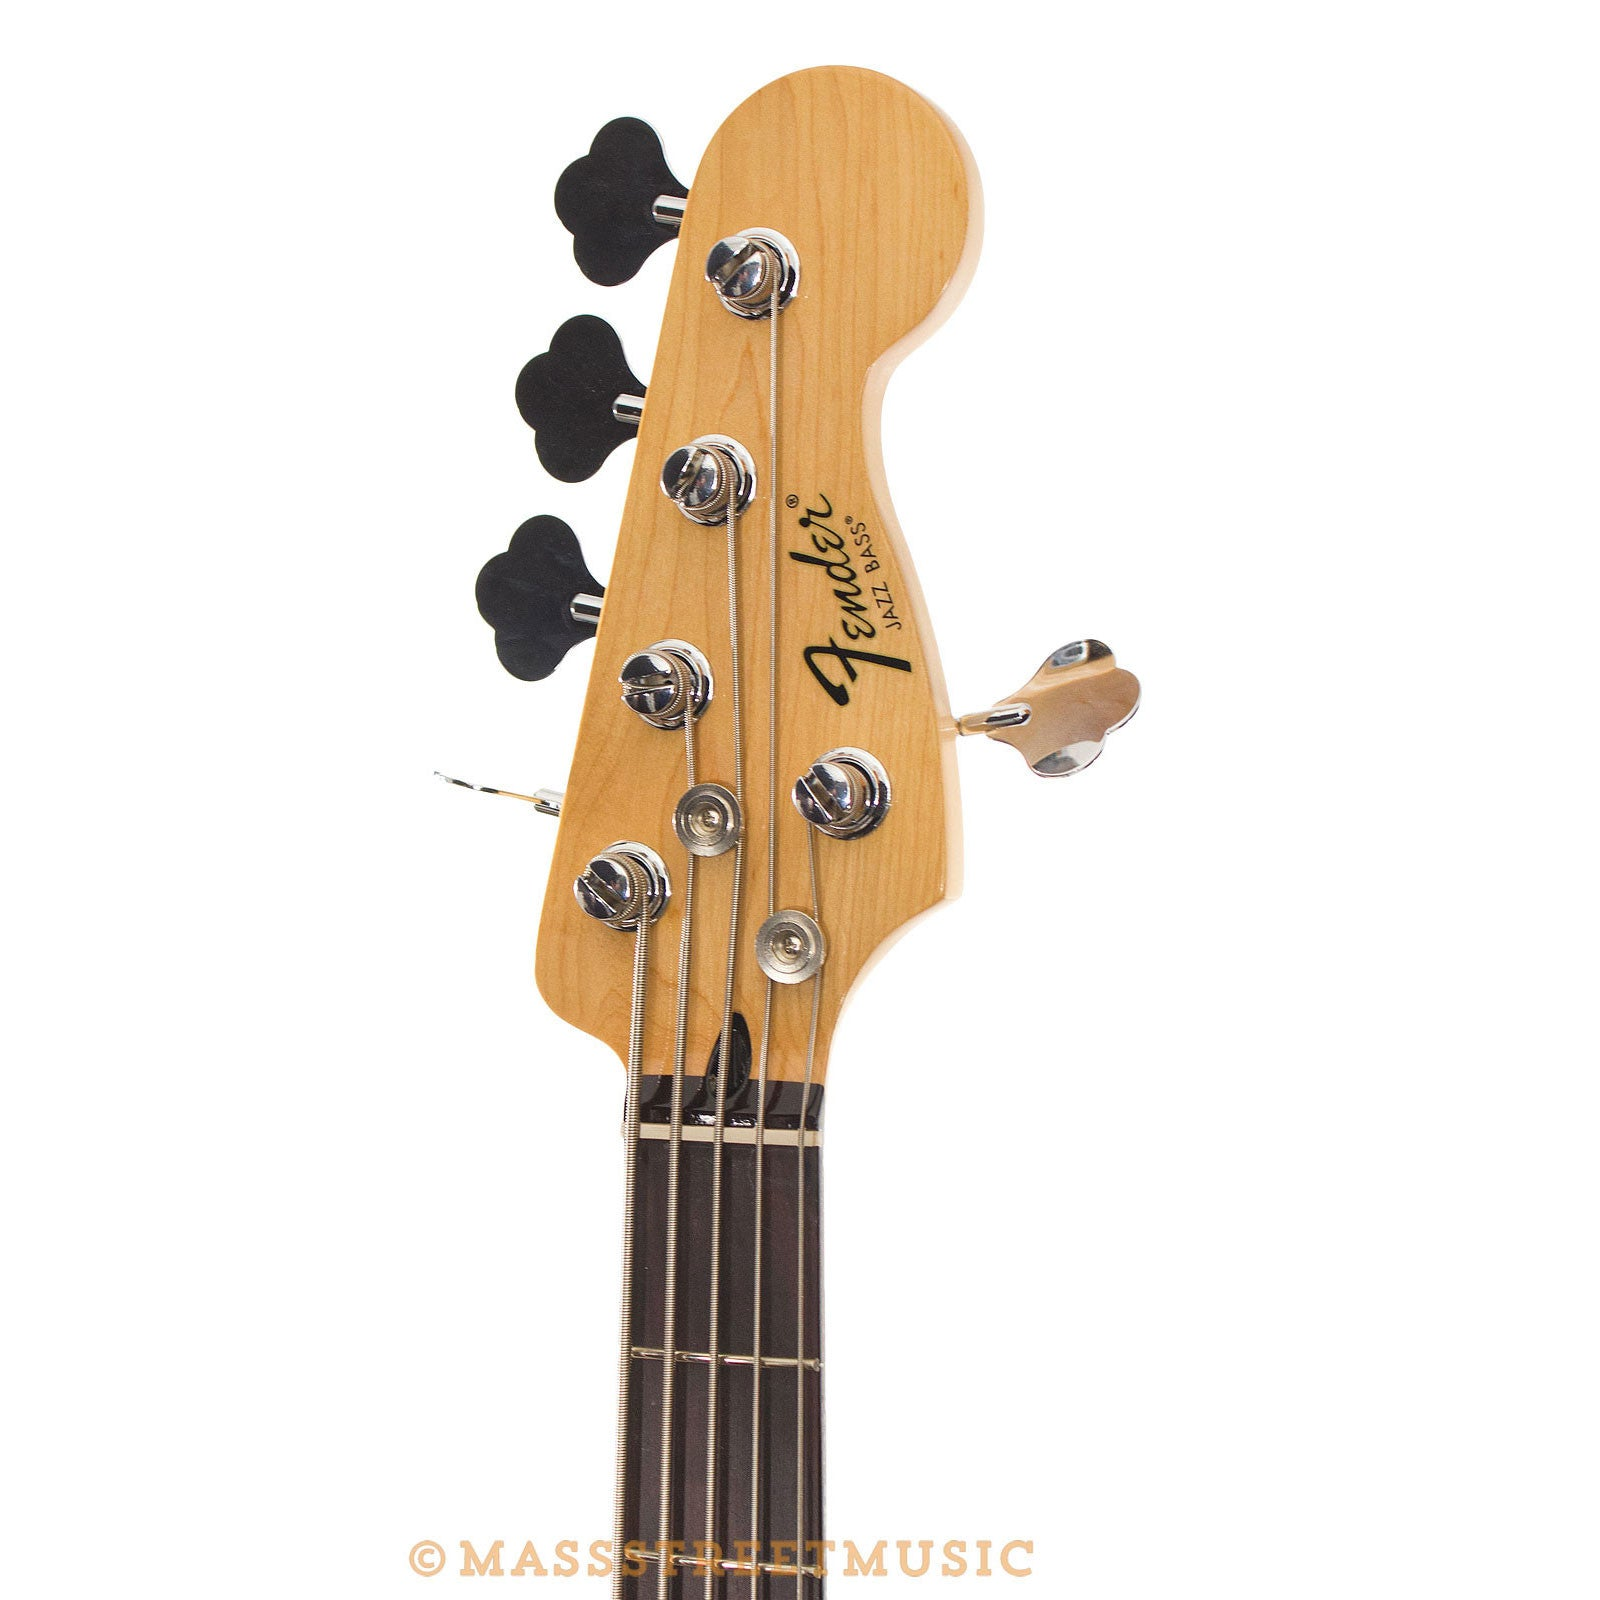 Fender bass headstock template pictures to pin on for Fender bass headstock template